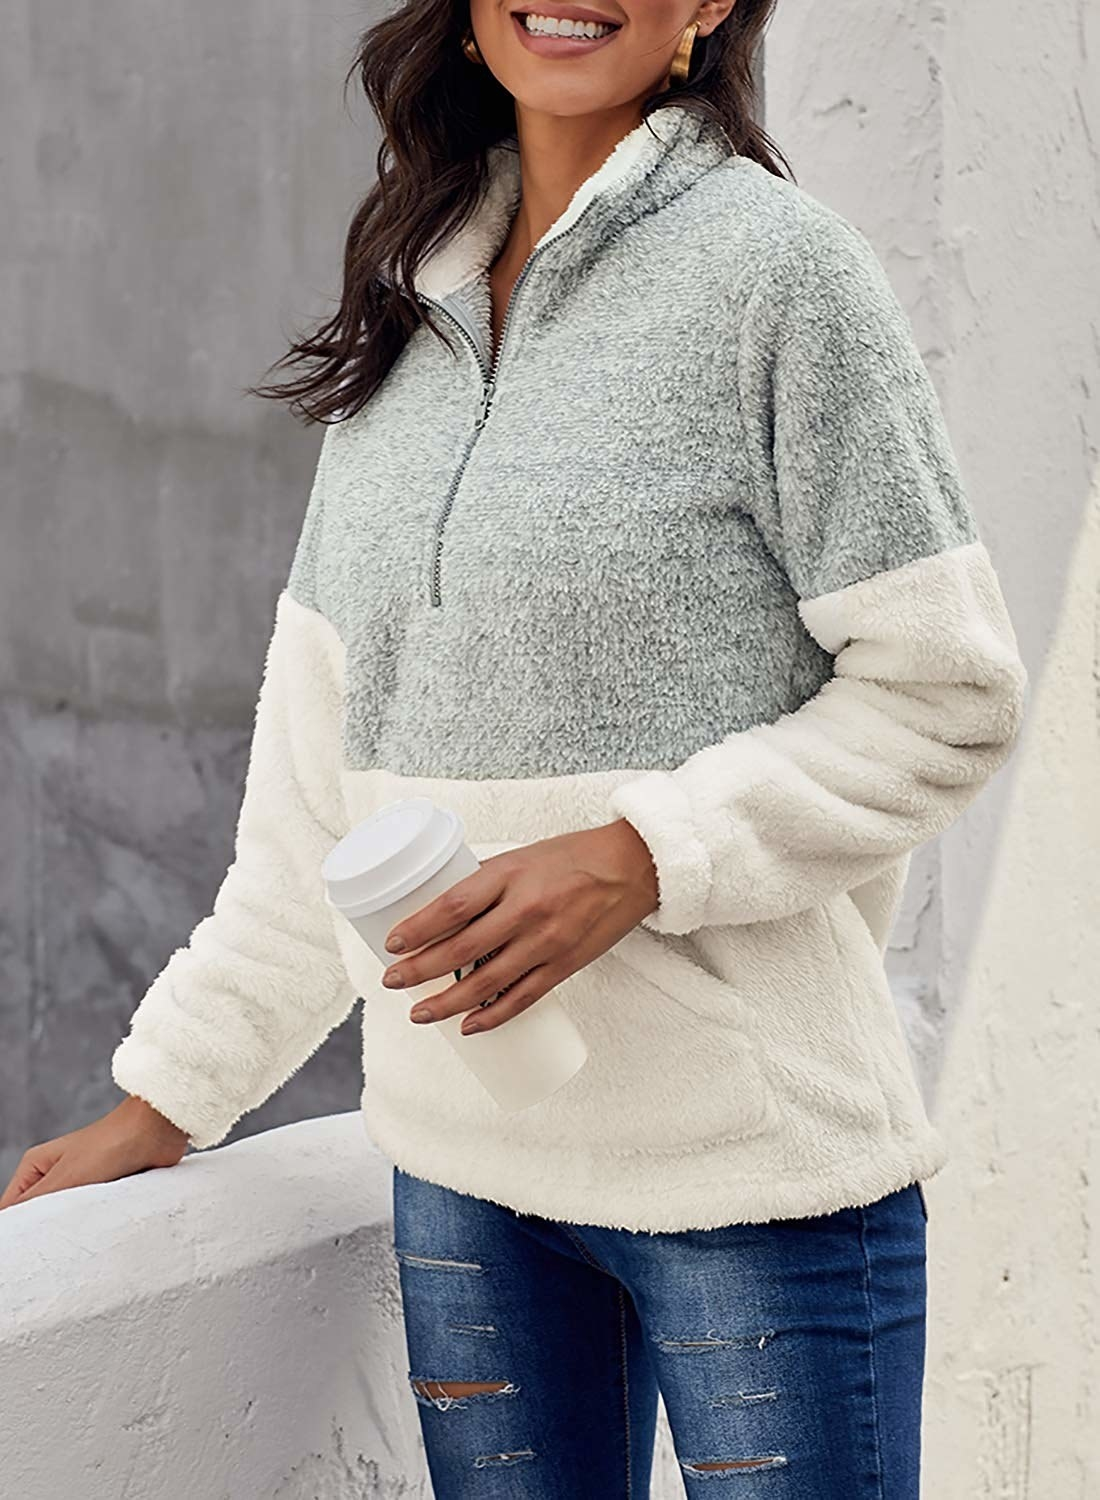 A model wearing the fleece pullover.